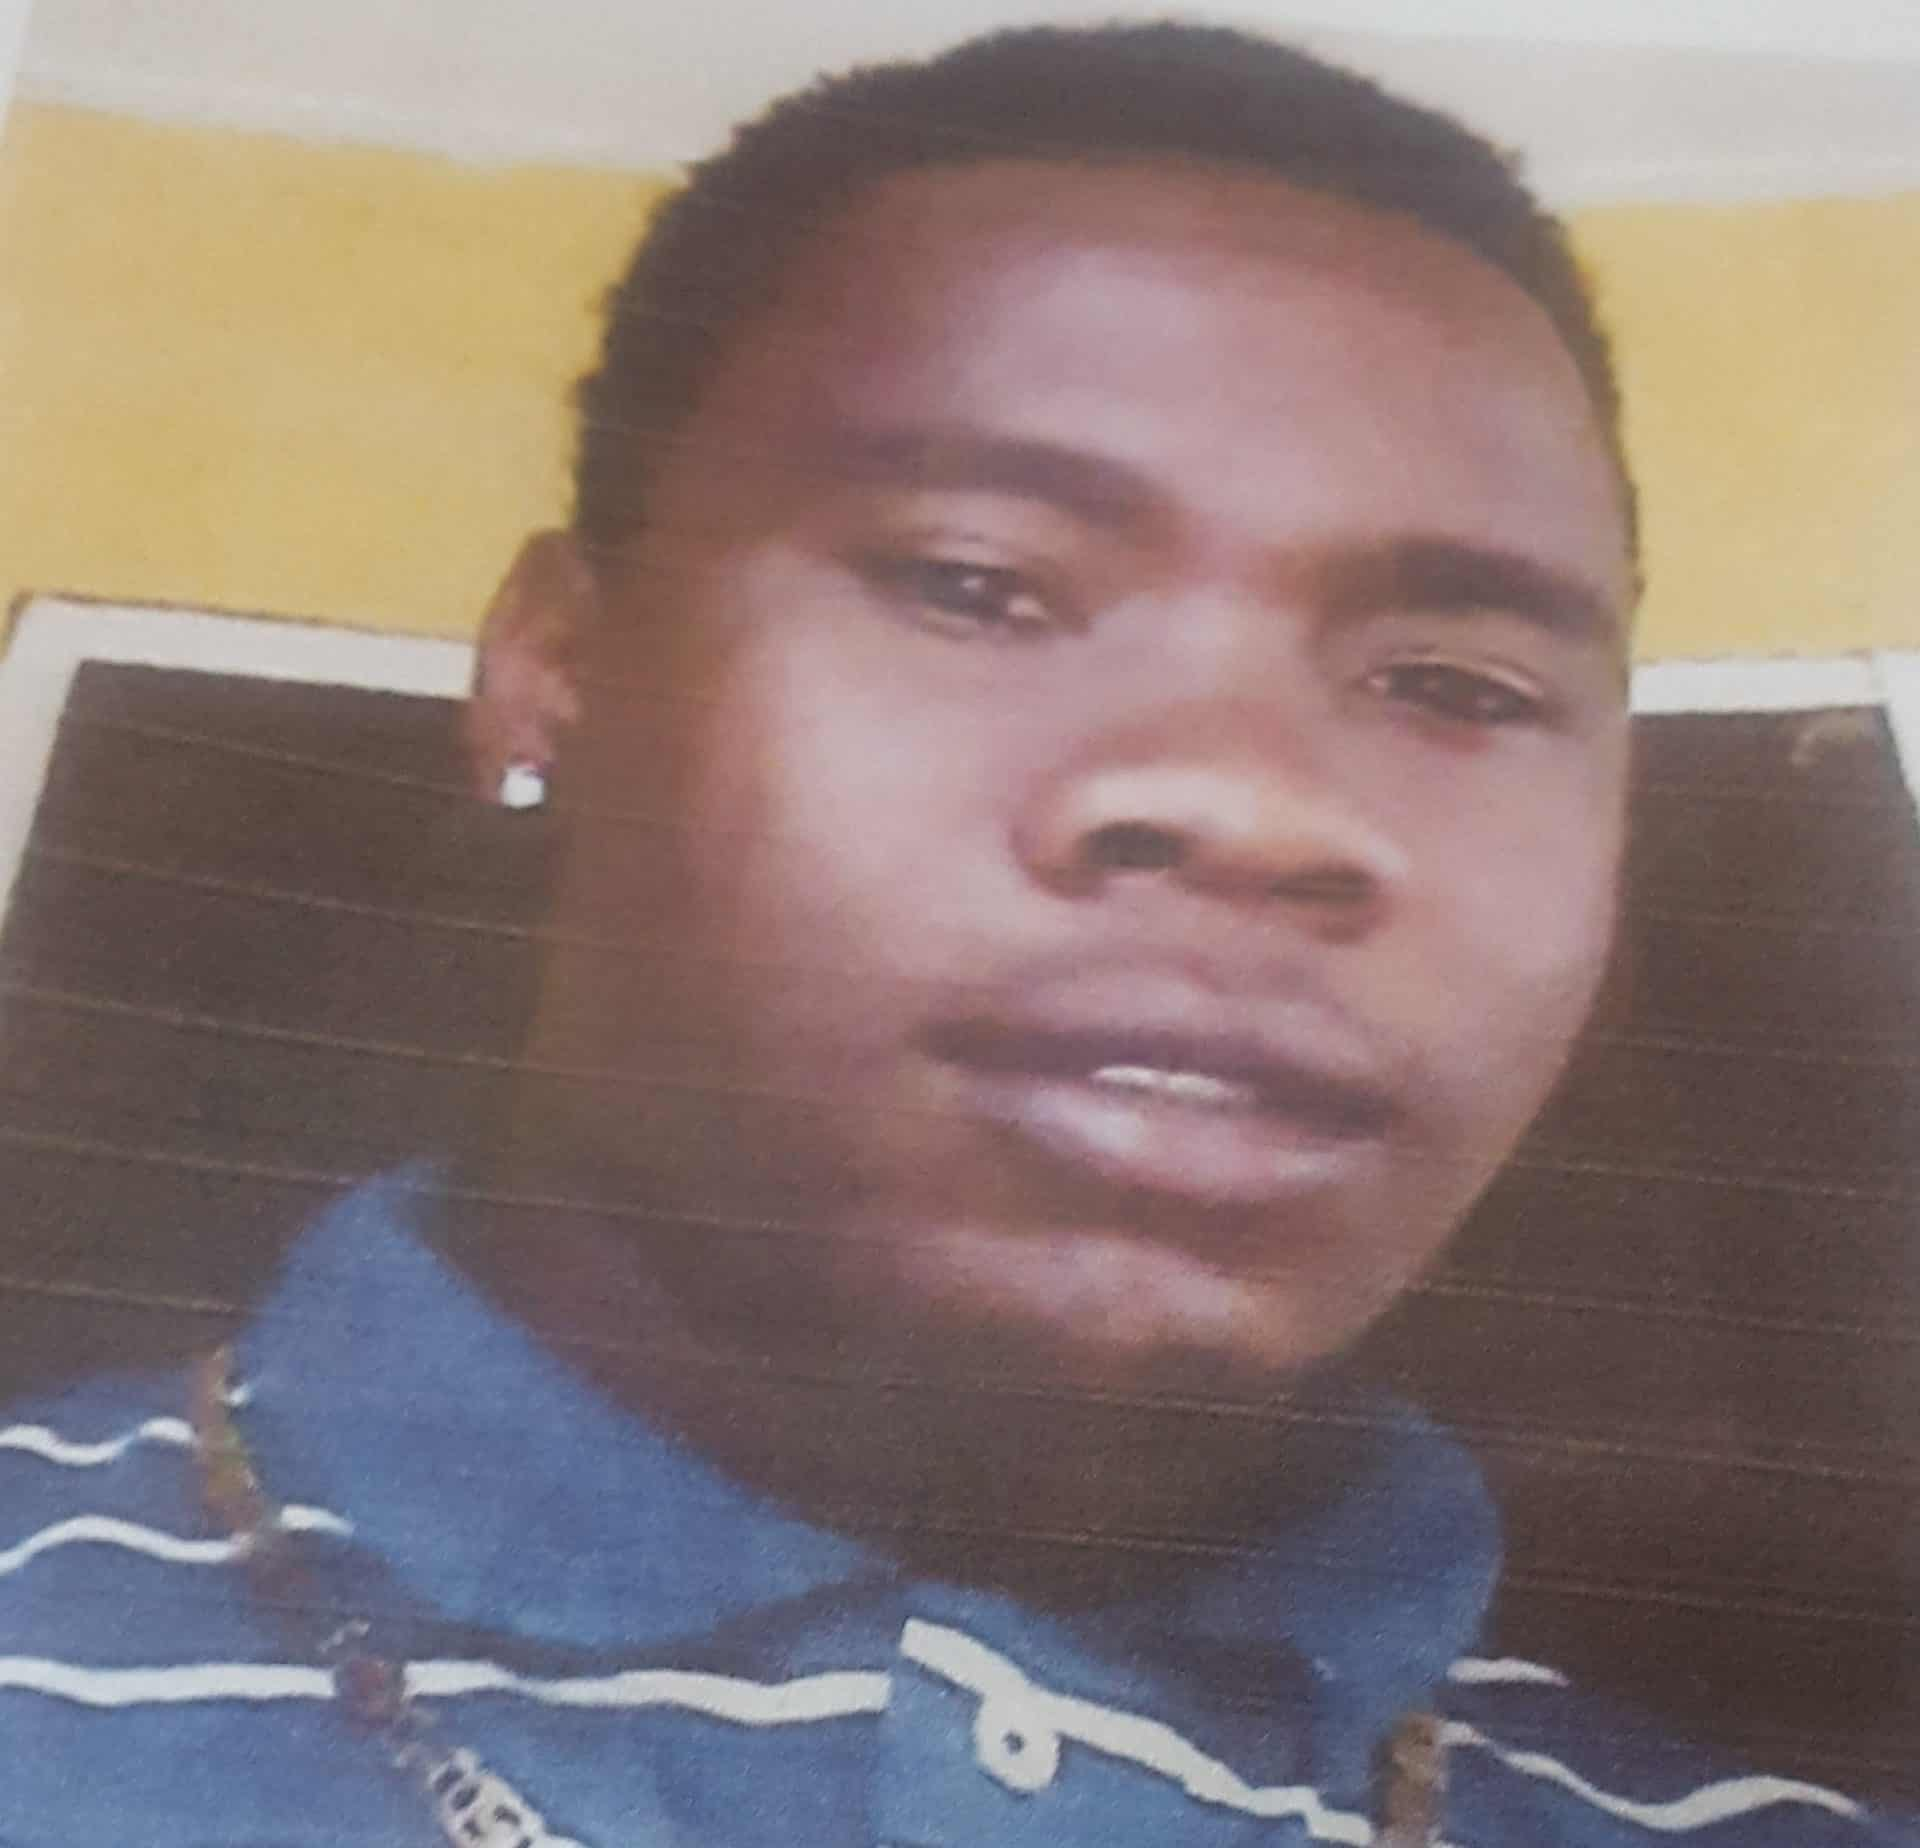 Rajay Betty, 22, from Duhaney Park Missing